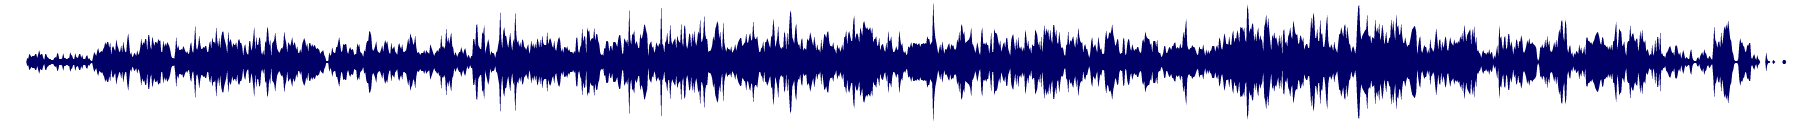 waveform of track #86049